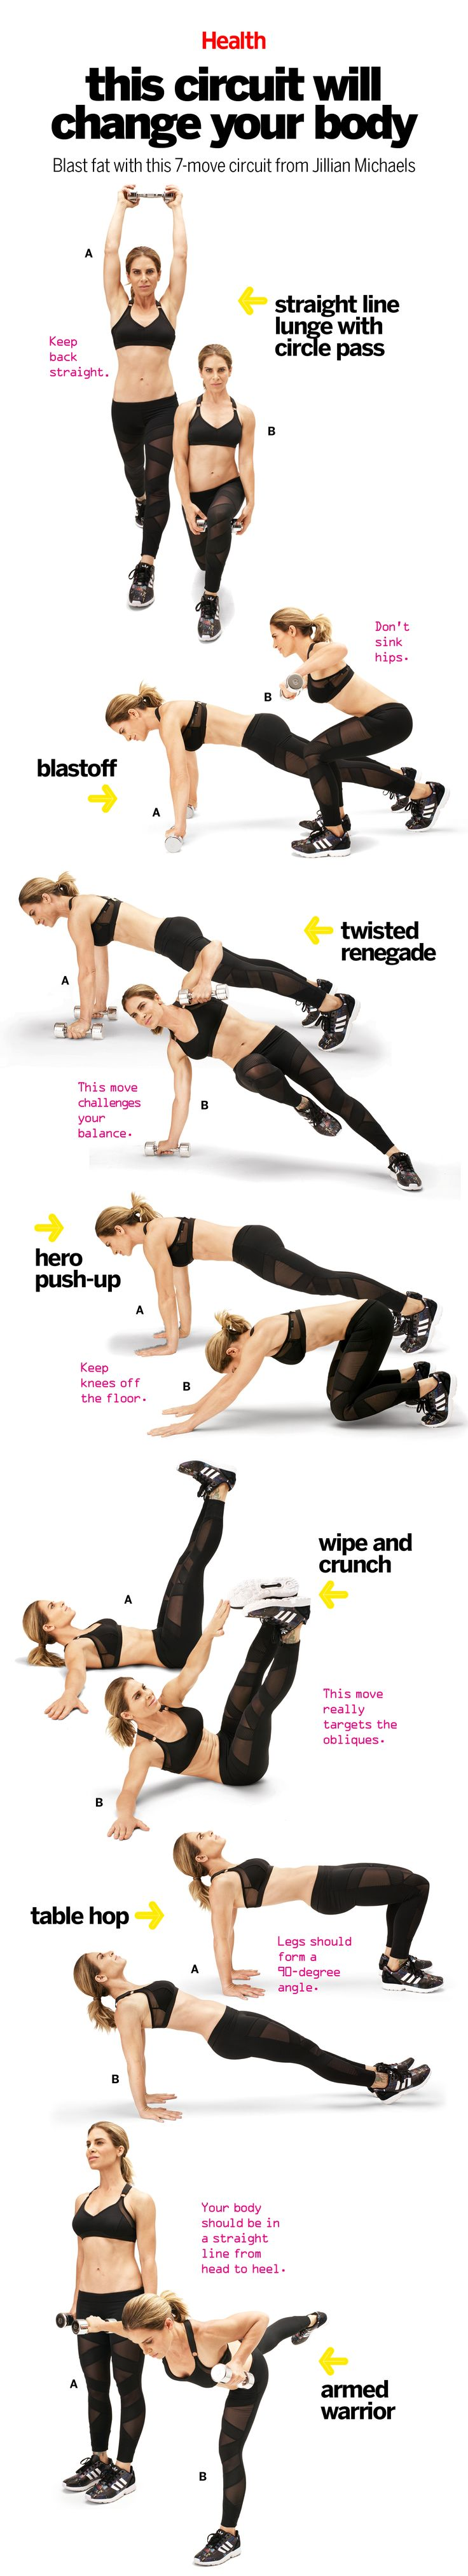 This comprehensive workout, which Jillian Michaels created for Health, trains the muscles in a way that will bust through even the most persistent plateau. Do it four times a week, paired with 20 minutes of high-intensity interval training, and watch your body be transformed. | Health.com